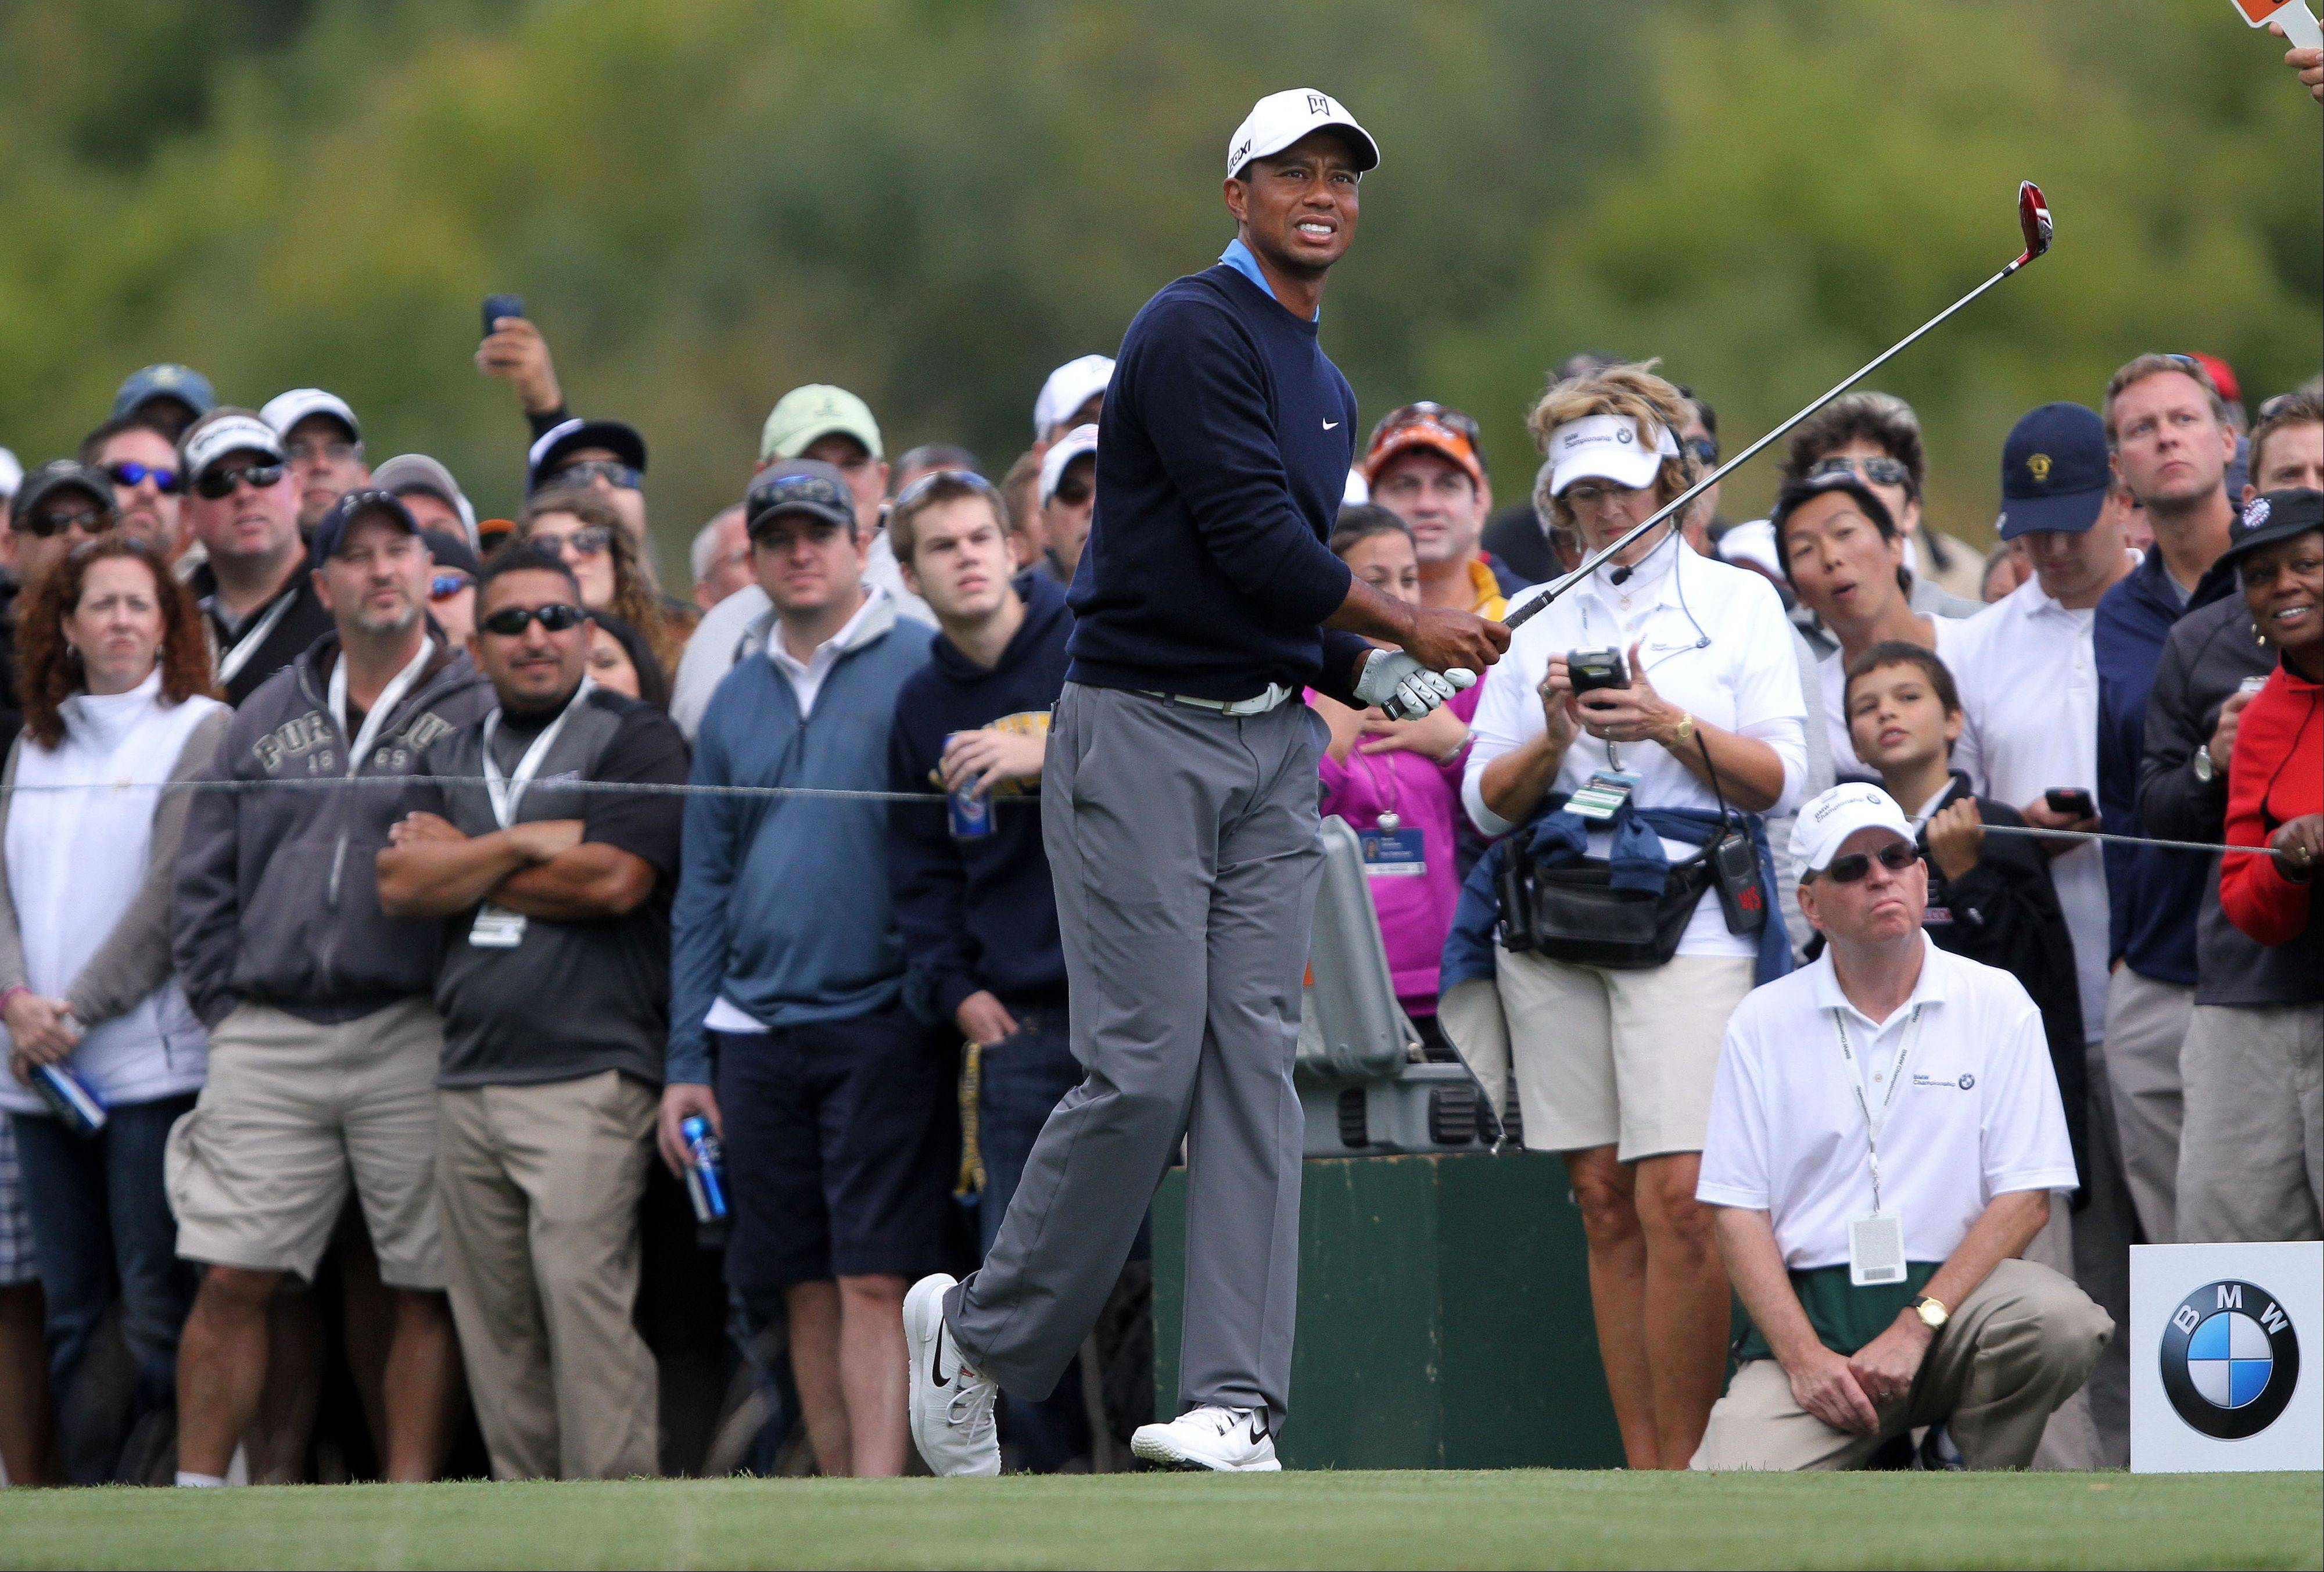 Tiger Woods watches his tee shot on the 8th hole.